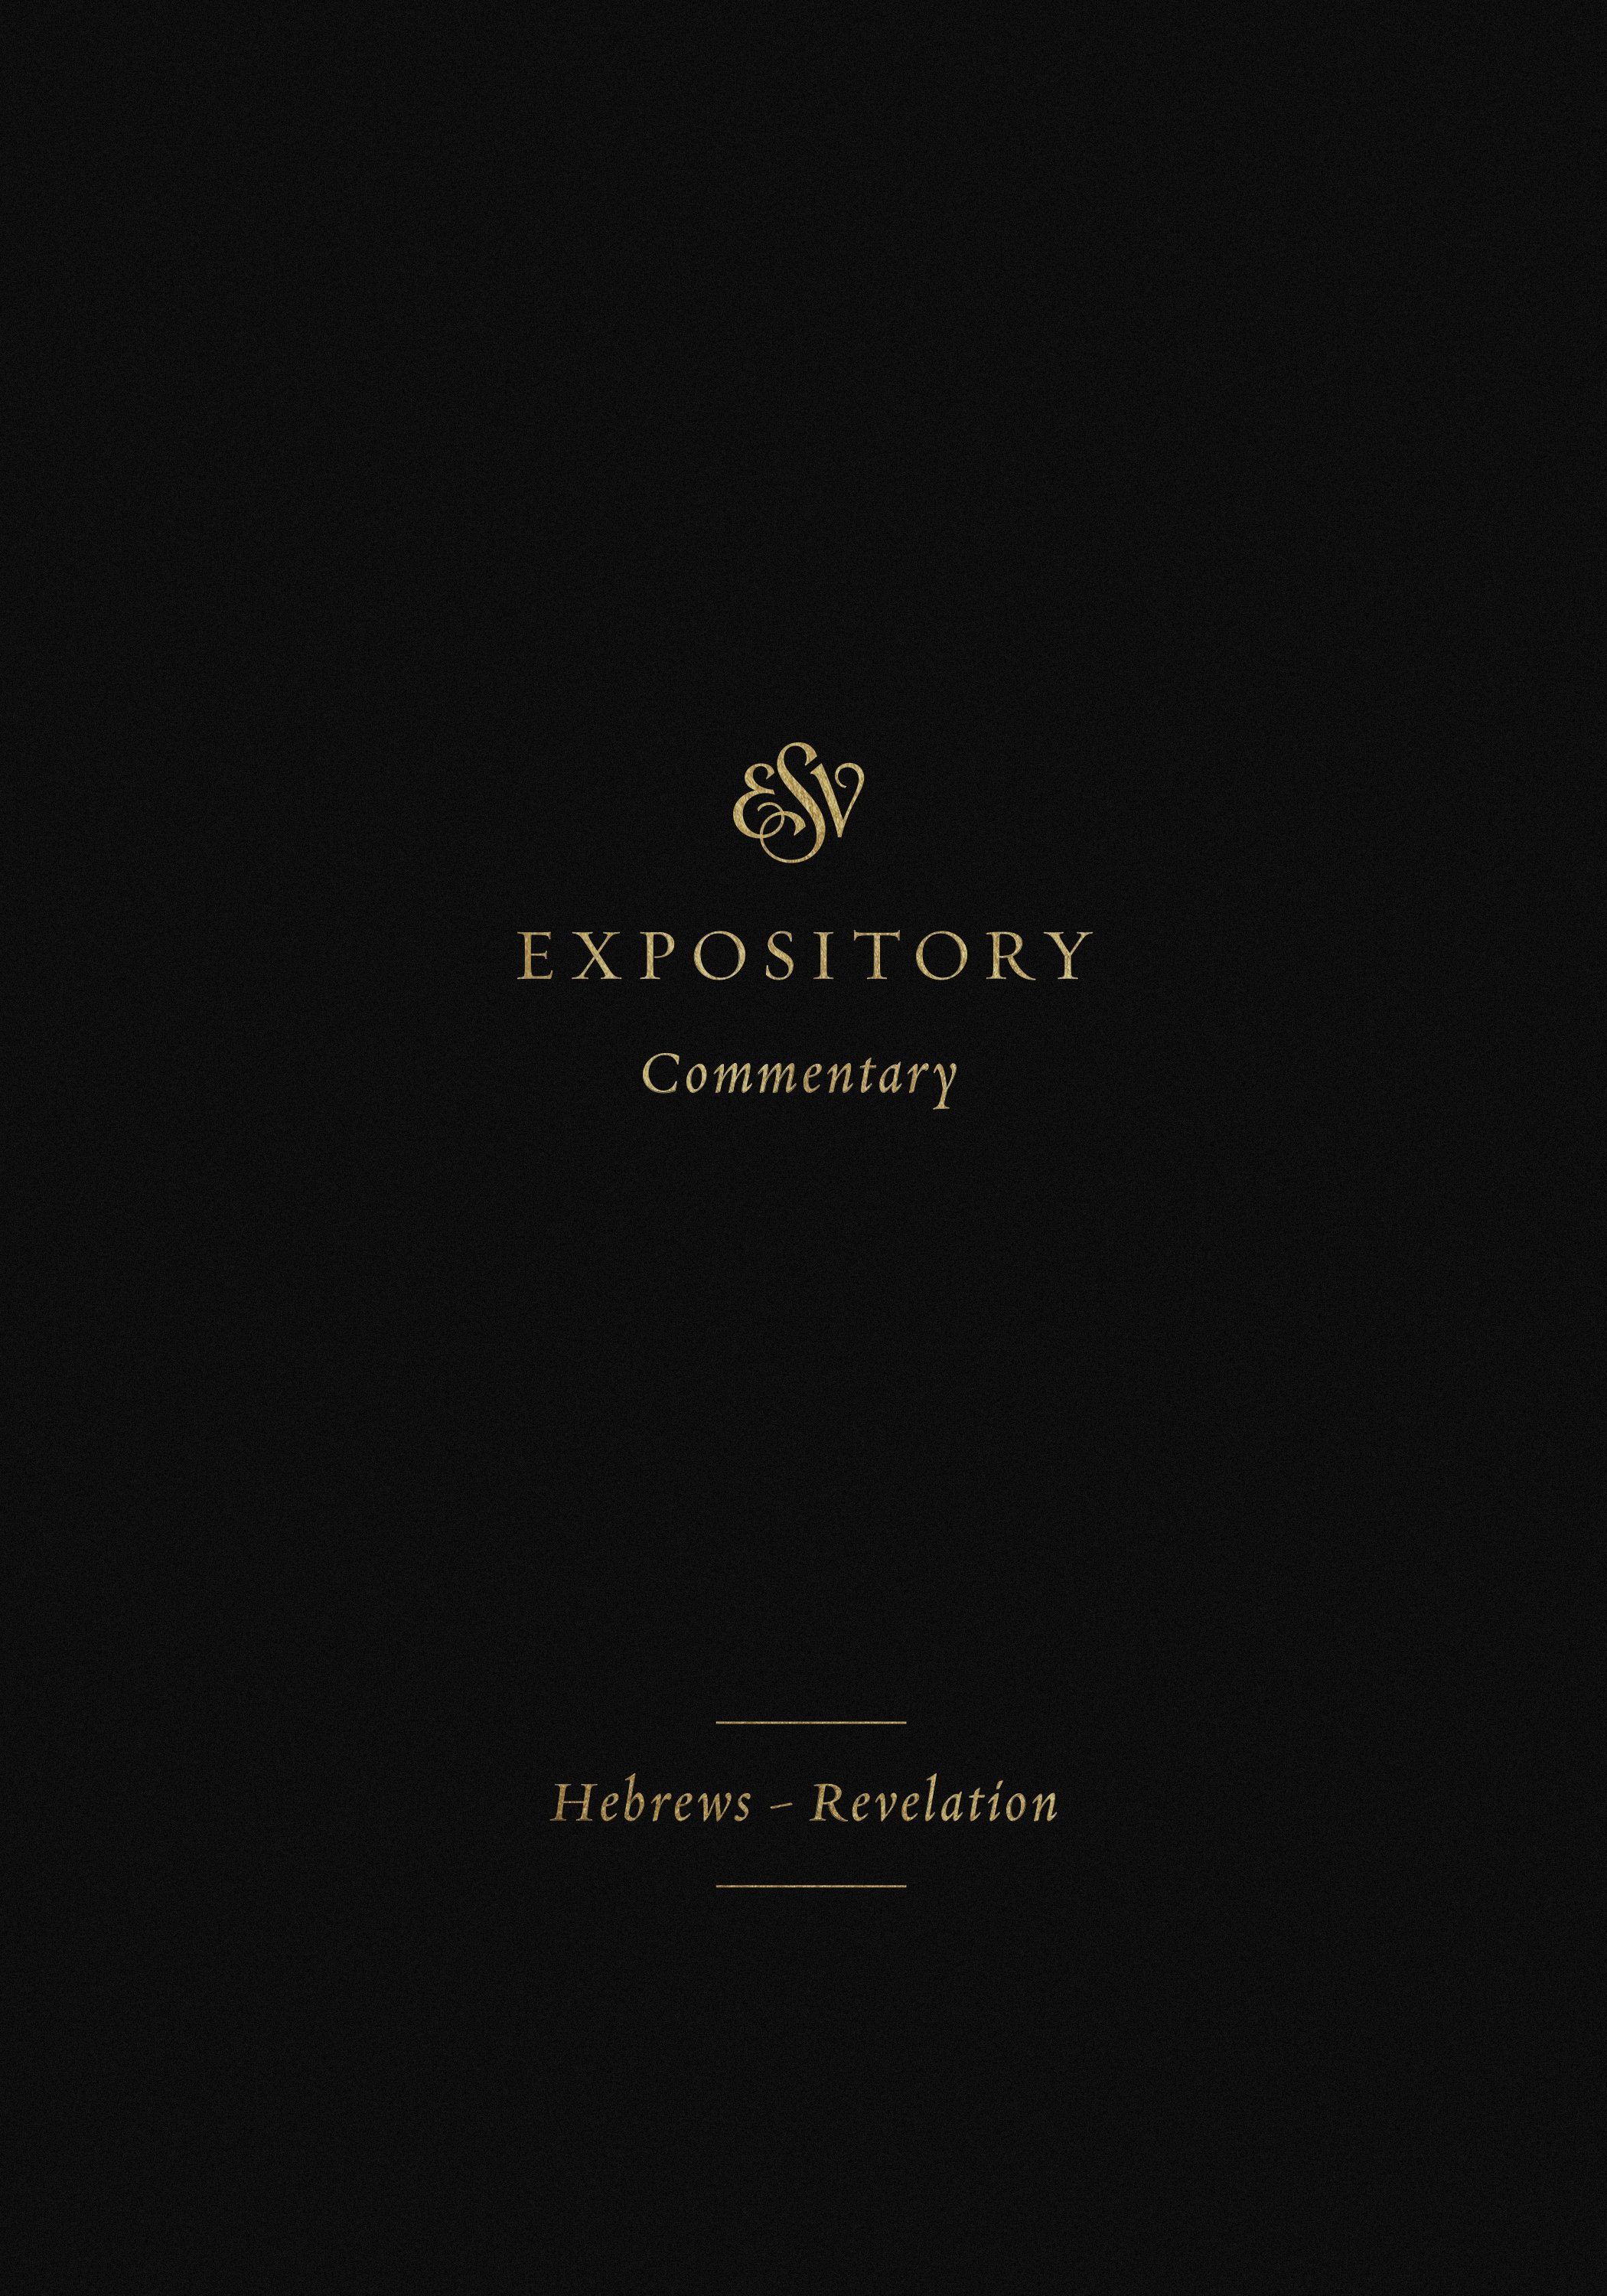 The ESV Bible Expository Commentary: Hebrews-Revelation